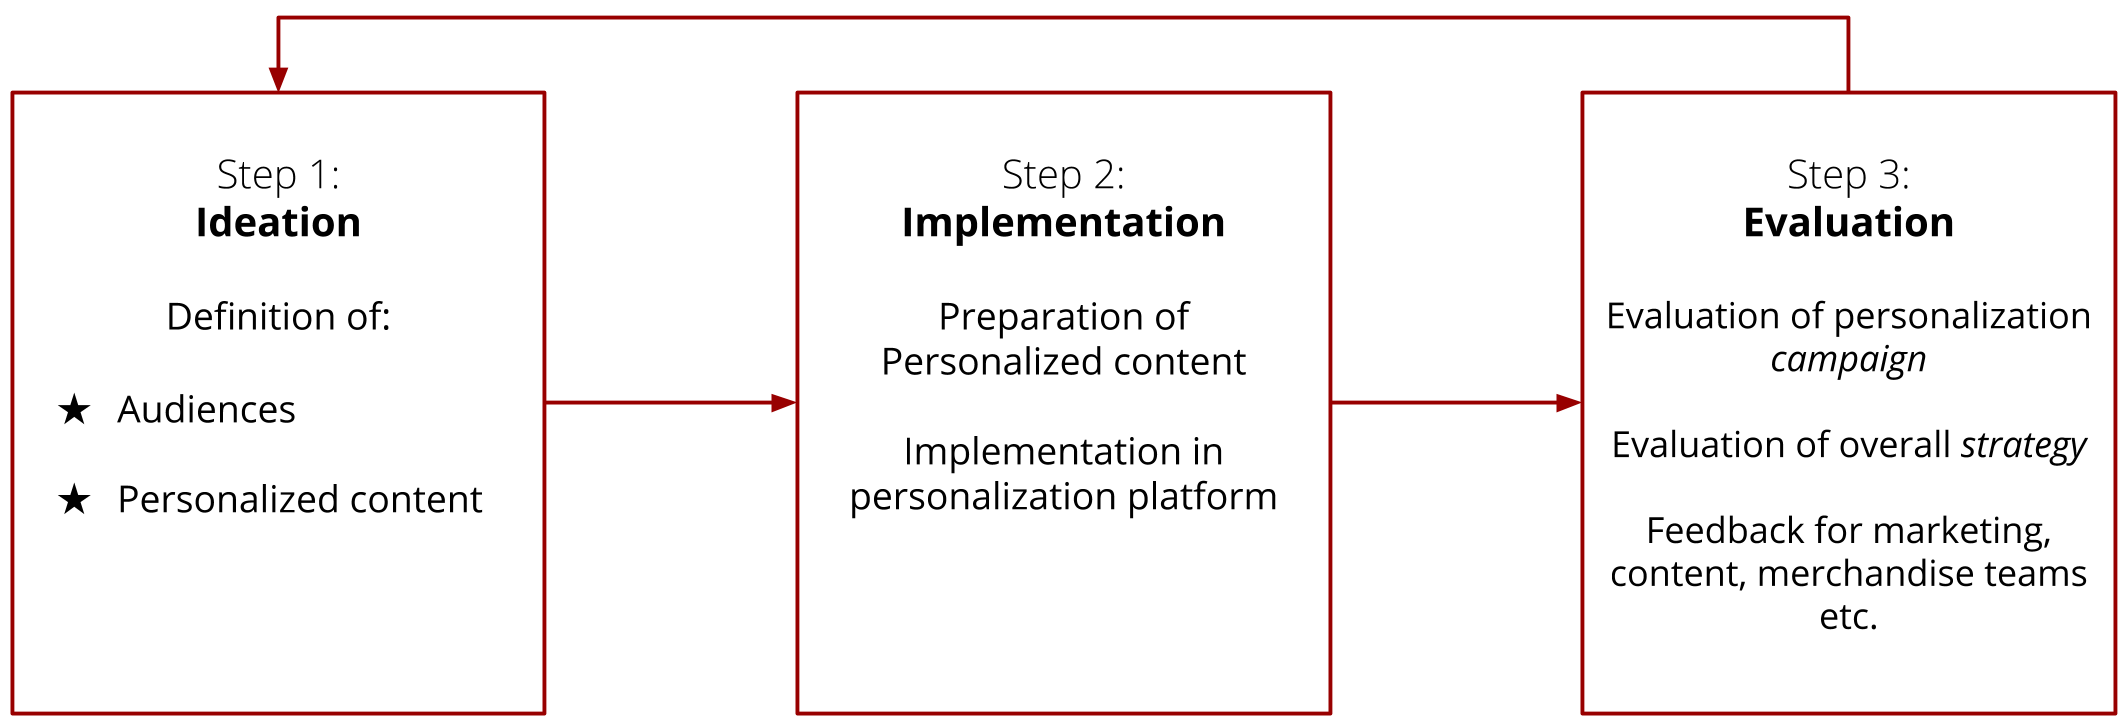 Successful E Commerce Personalization In 3 Relatively Easy Steps By Max Speicher Aug 2020 Ux Collective